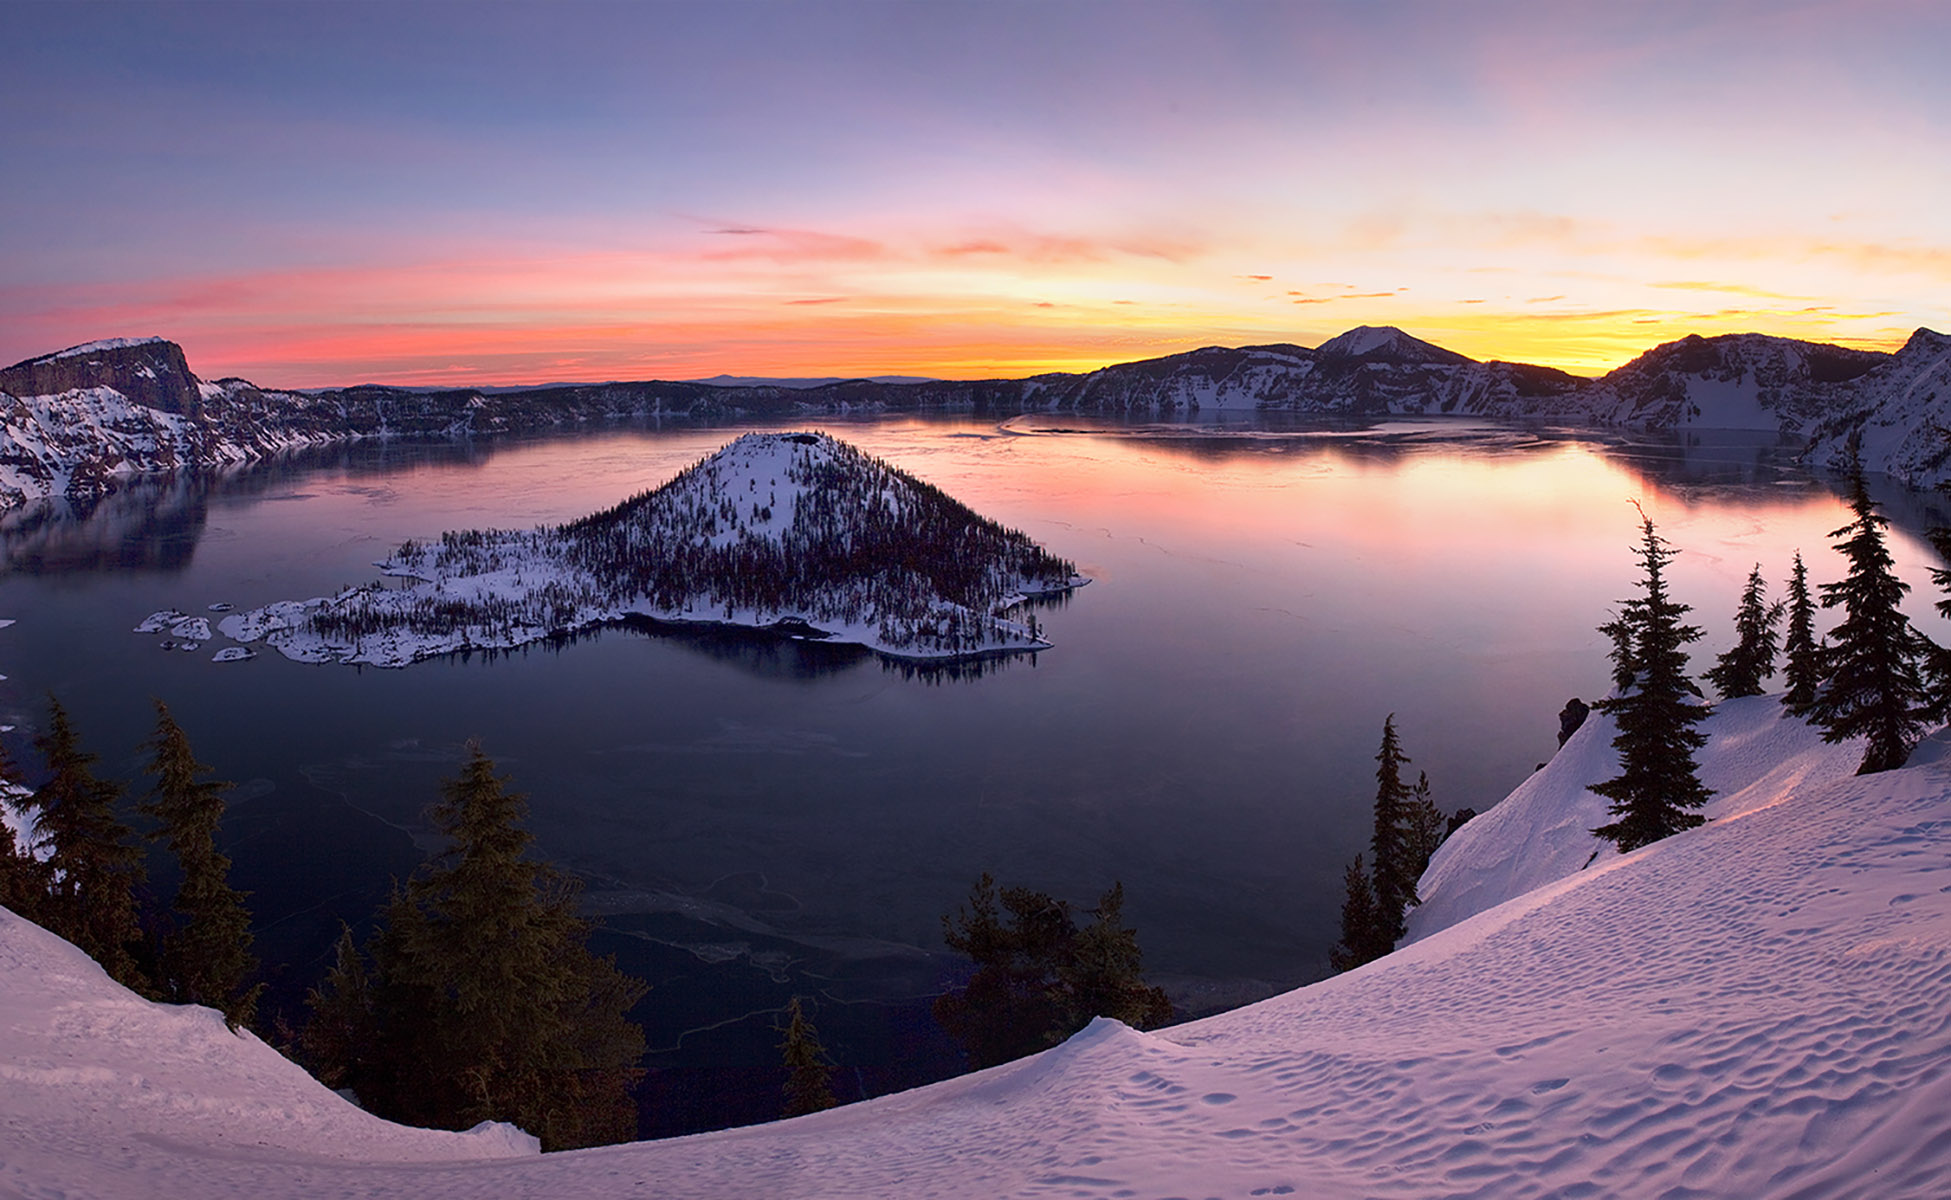 Beautiful sunrise over Crater Lake Oregon in the snow.